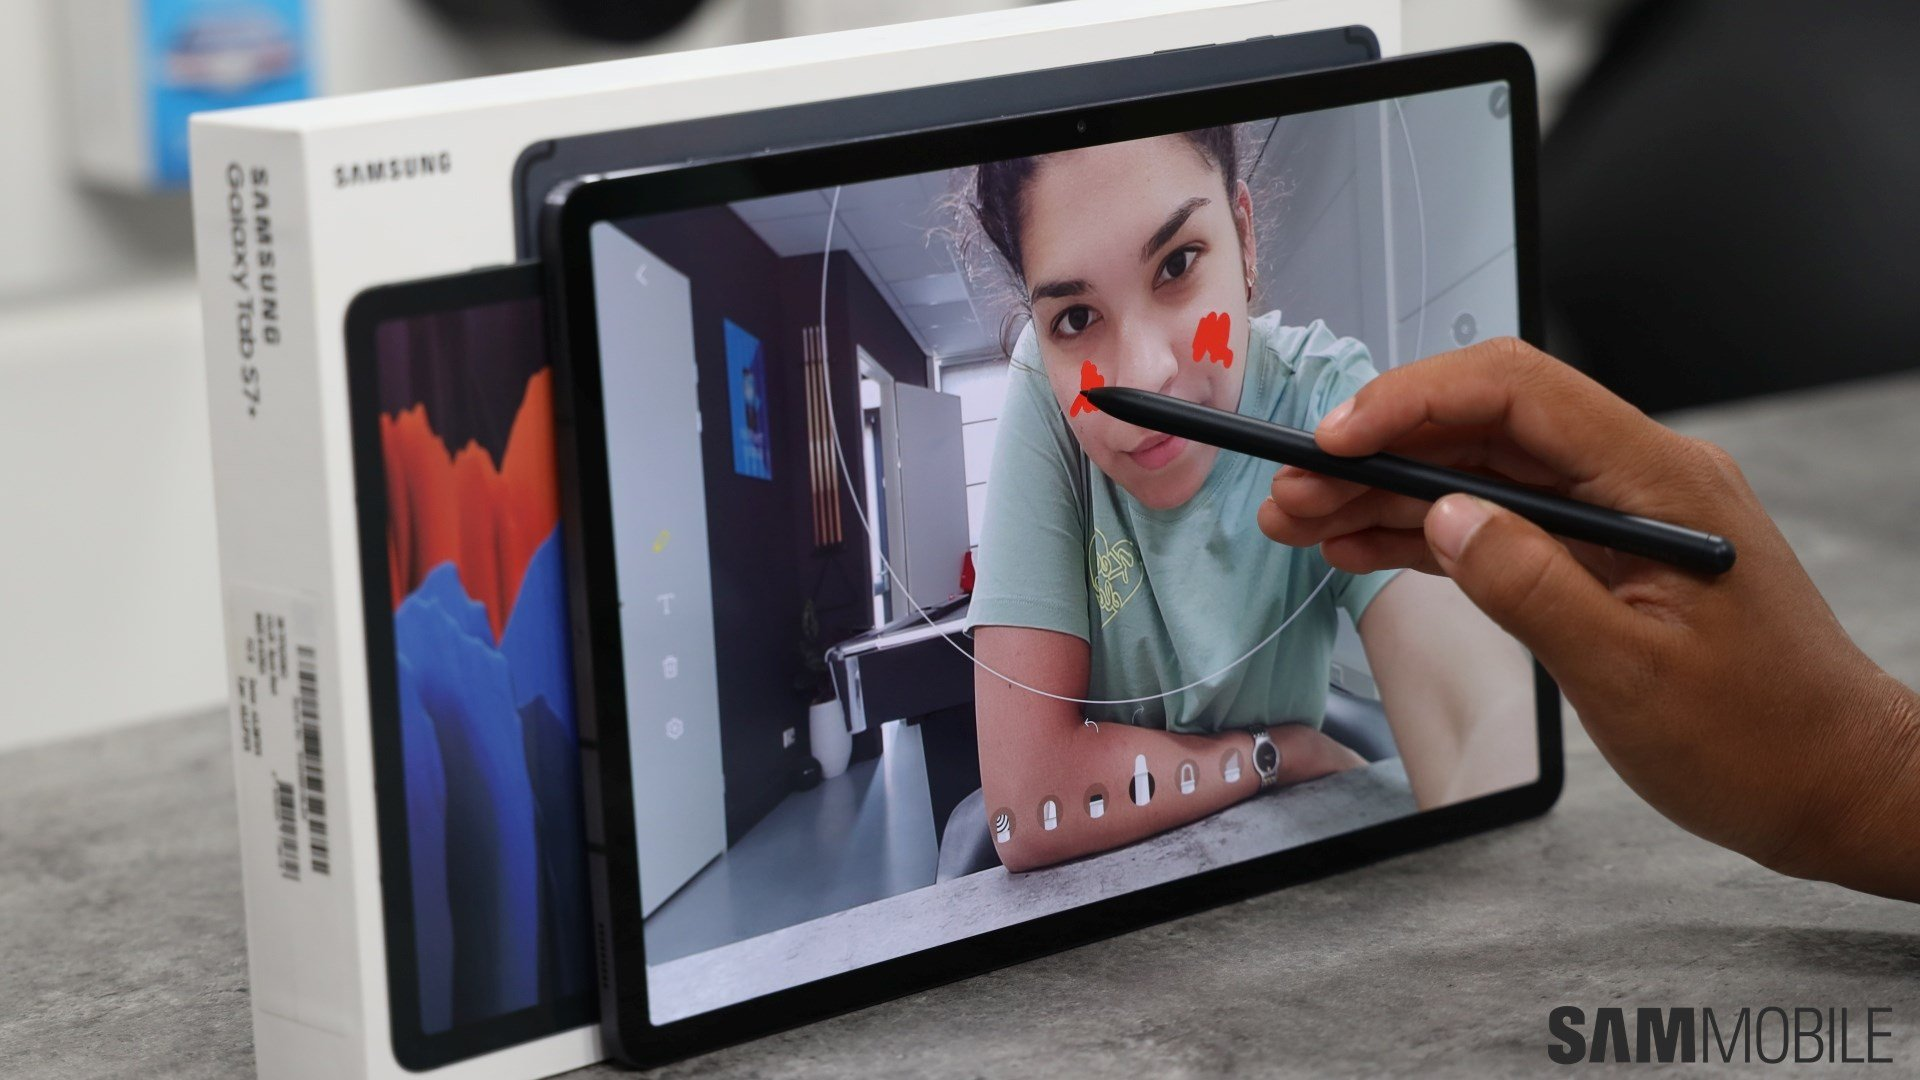 Galaxy Tab S7 Plus Review Look No Further For The Best Work From Home Tablet Sammobile